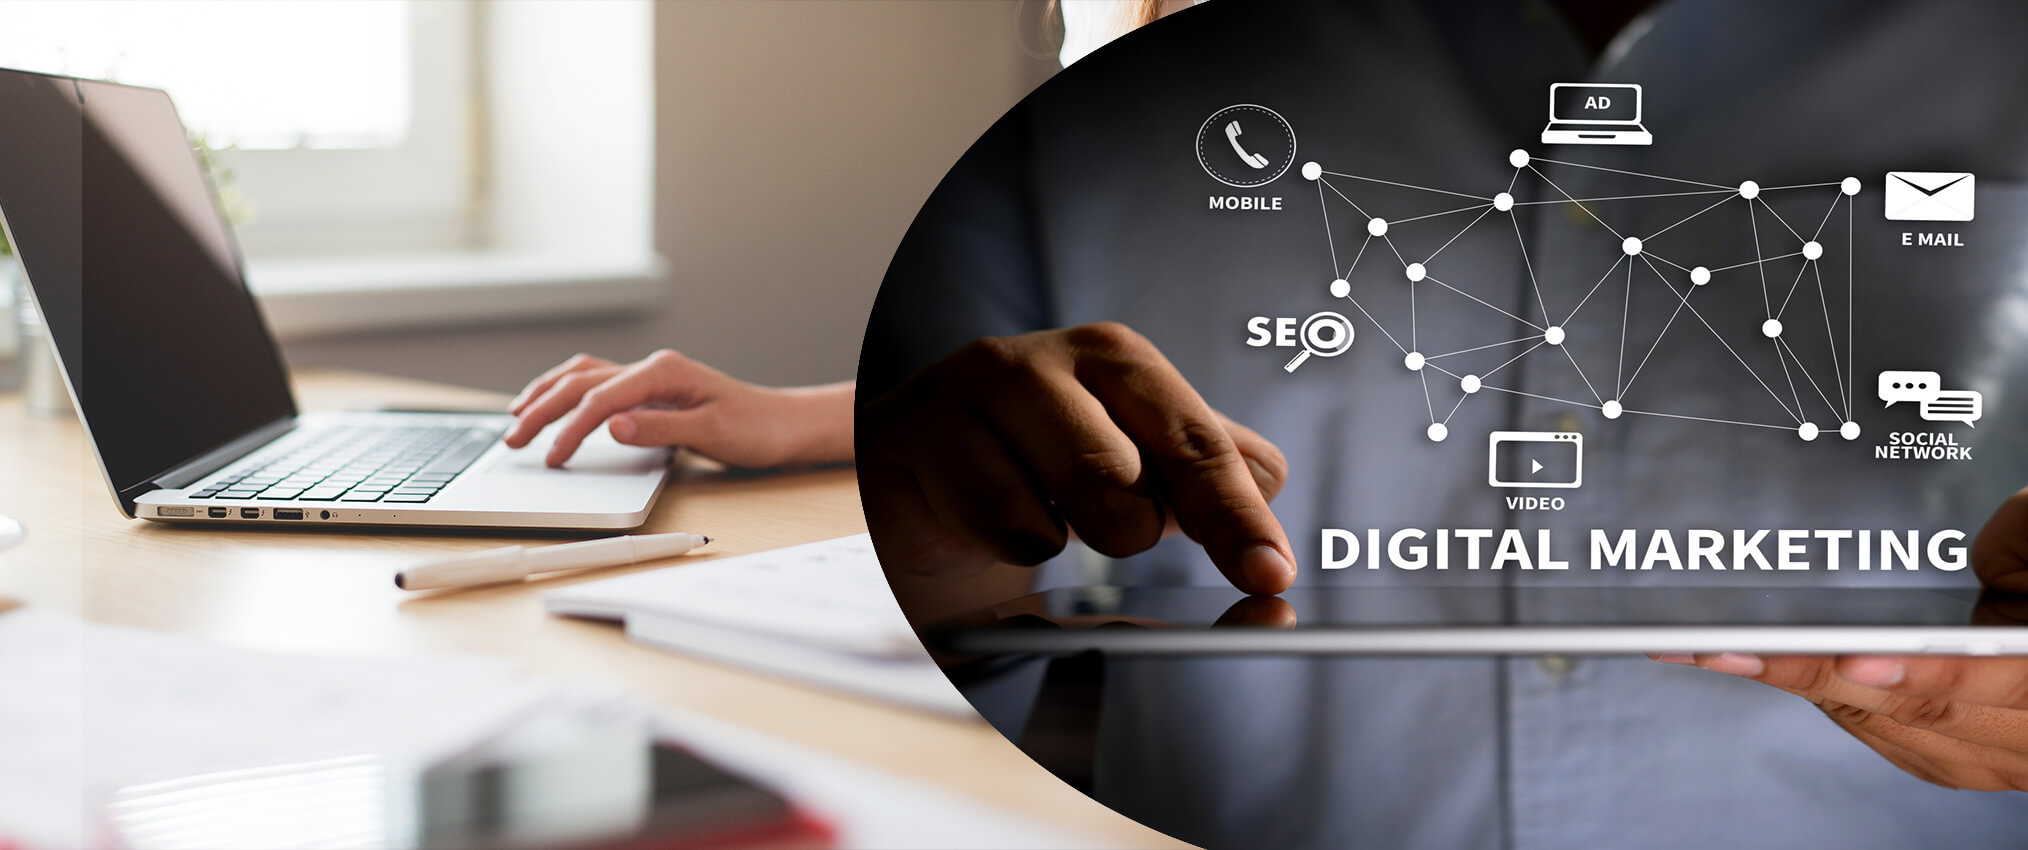 What companies need digital marketing services?